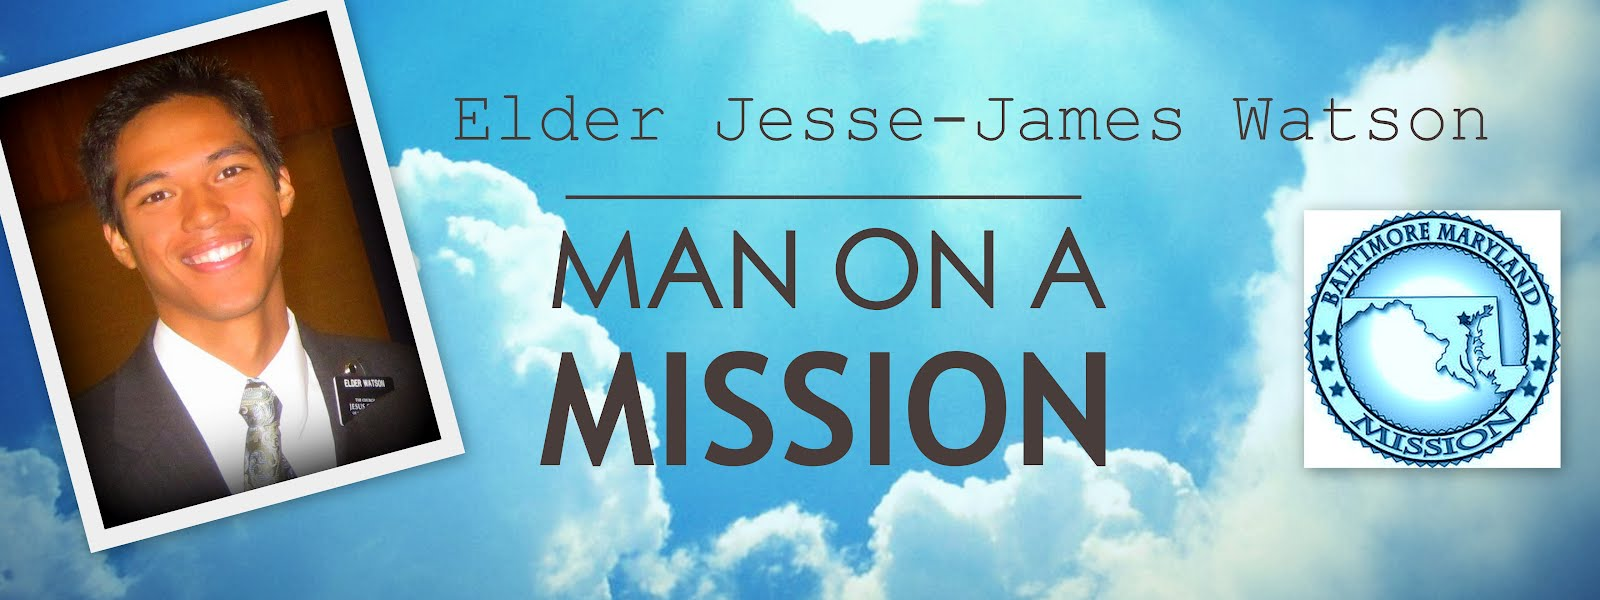 Elder Watson: Man on a Mission